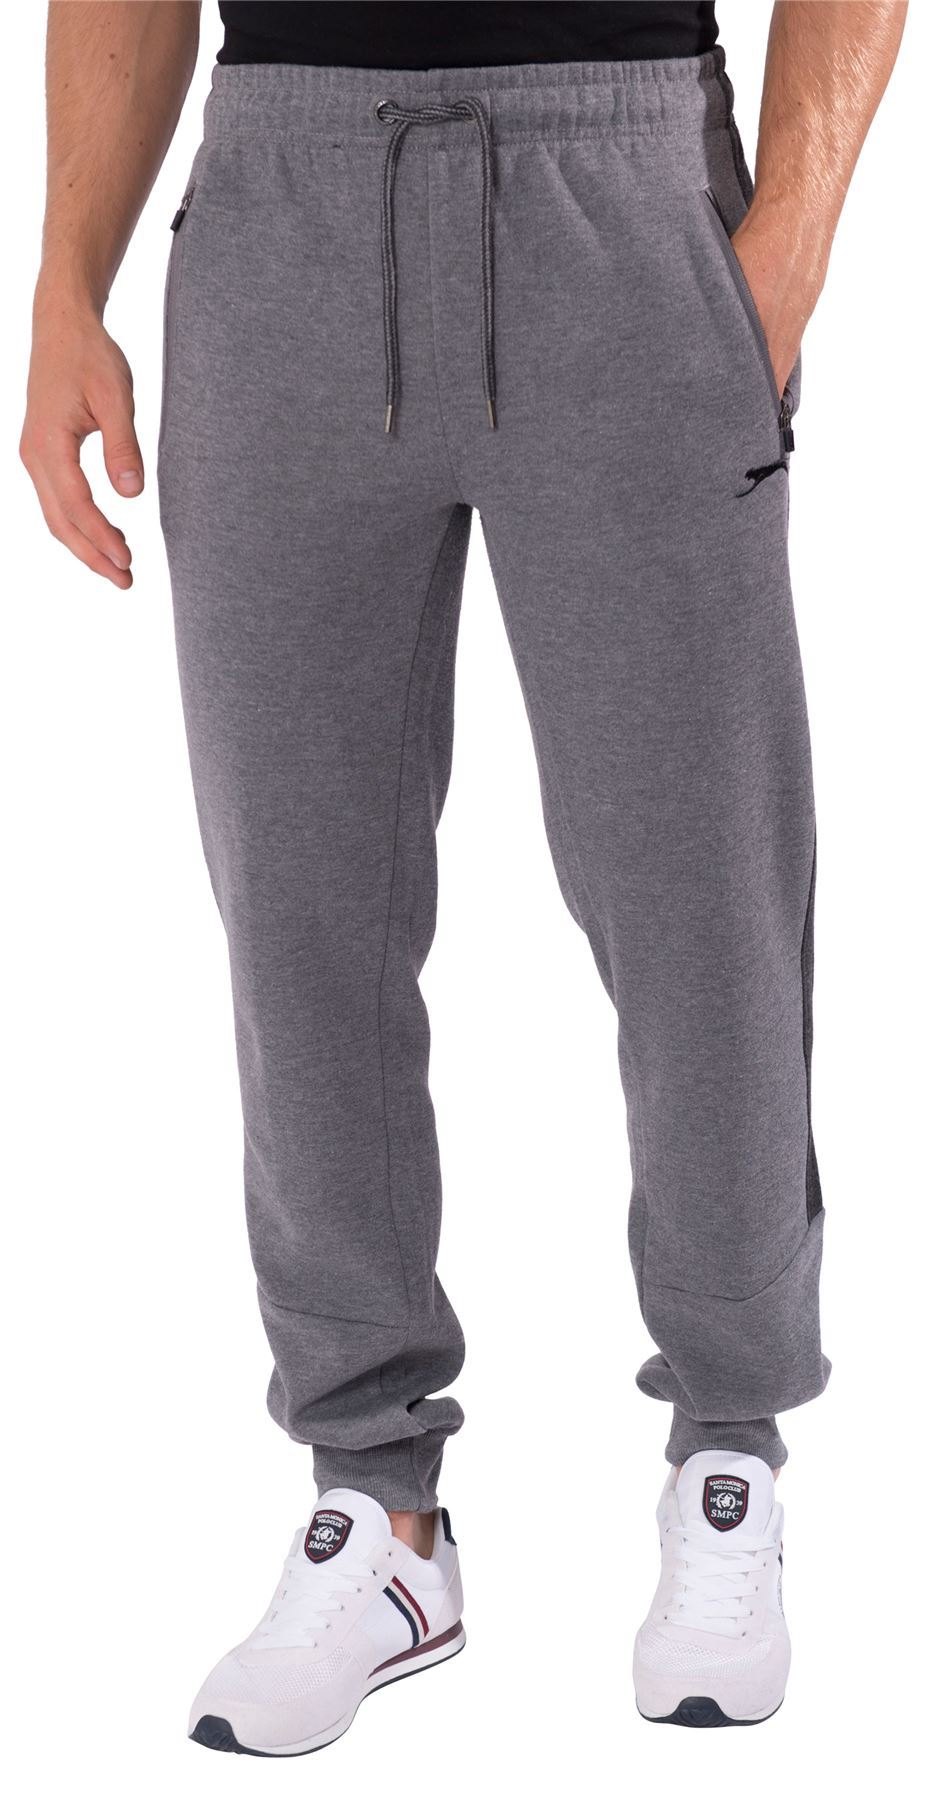 Find great deals on eBay for sweat pants zipper pockets. Shop with confidence.